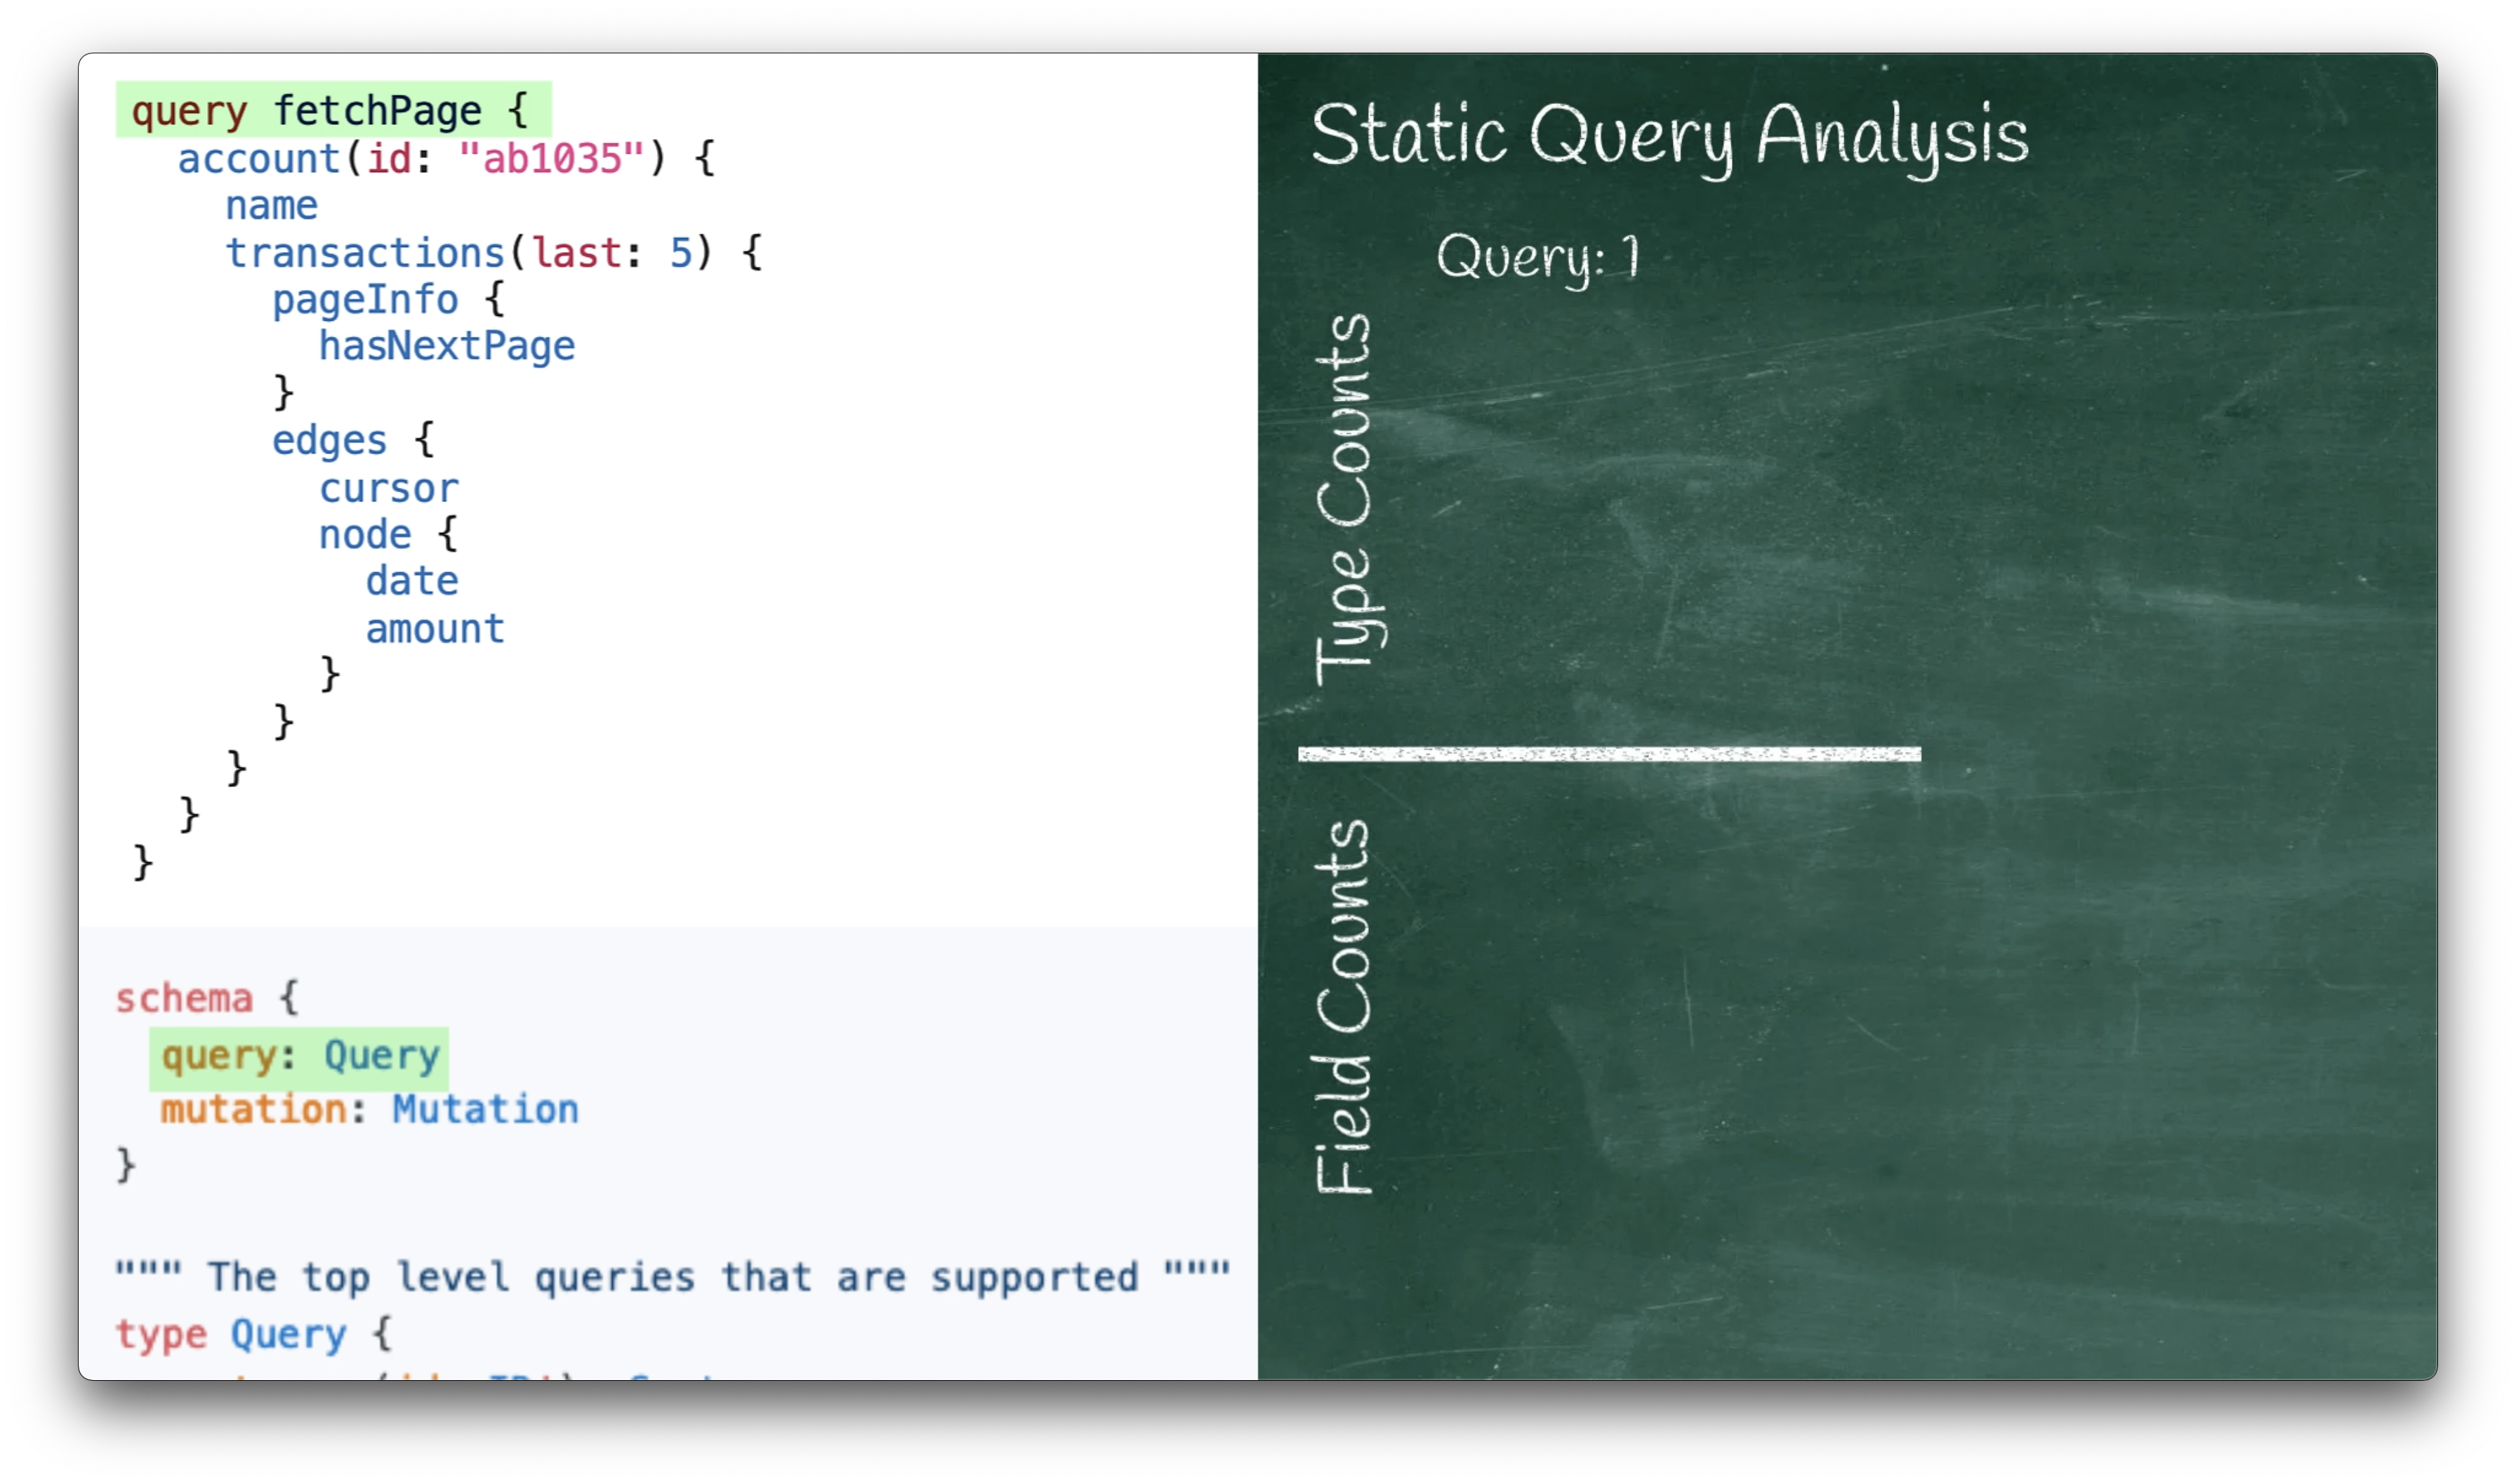 Static Query Analysis Timestep 1